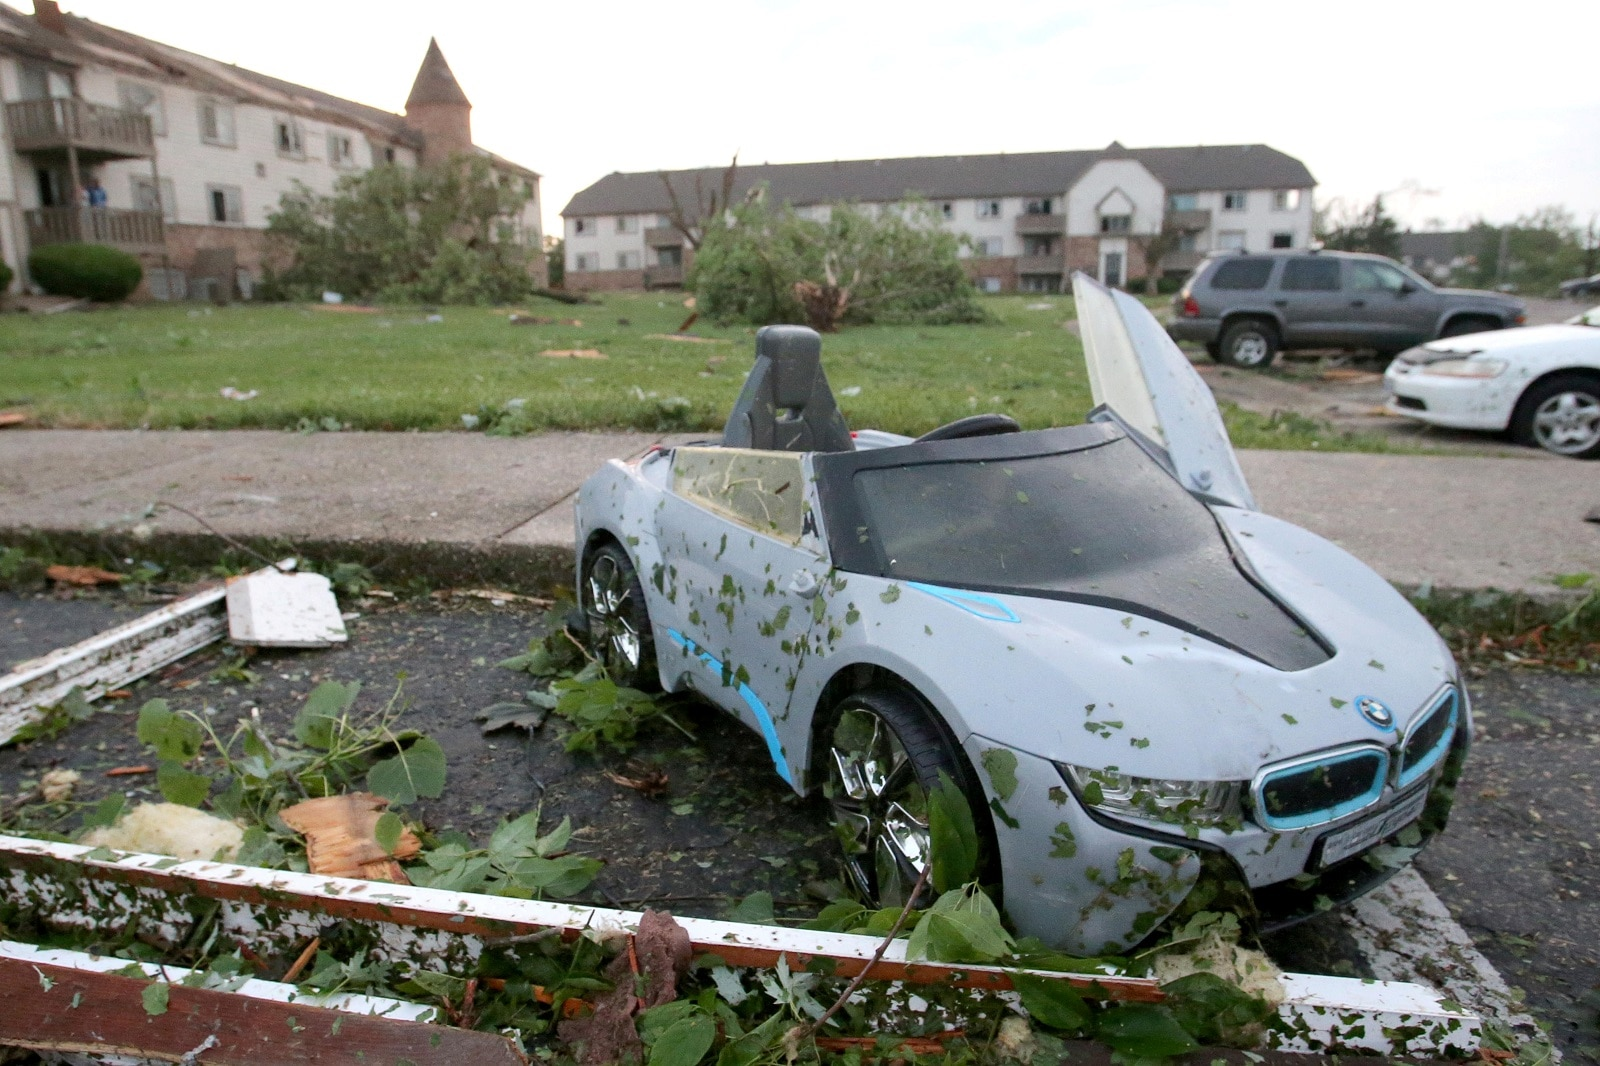 A child's toy car sits among debris from a tornado that touched down overnight in Trotwood near Dayton, Ohio, US May 28, 2019. REUTERS/Aaron Josefczyk